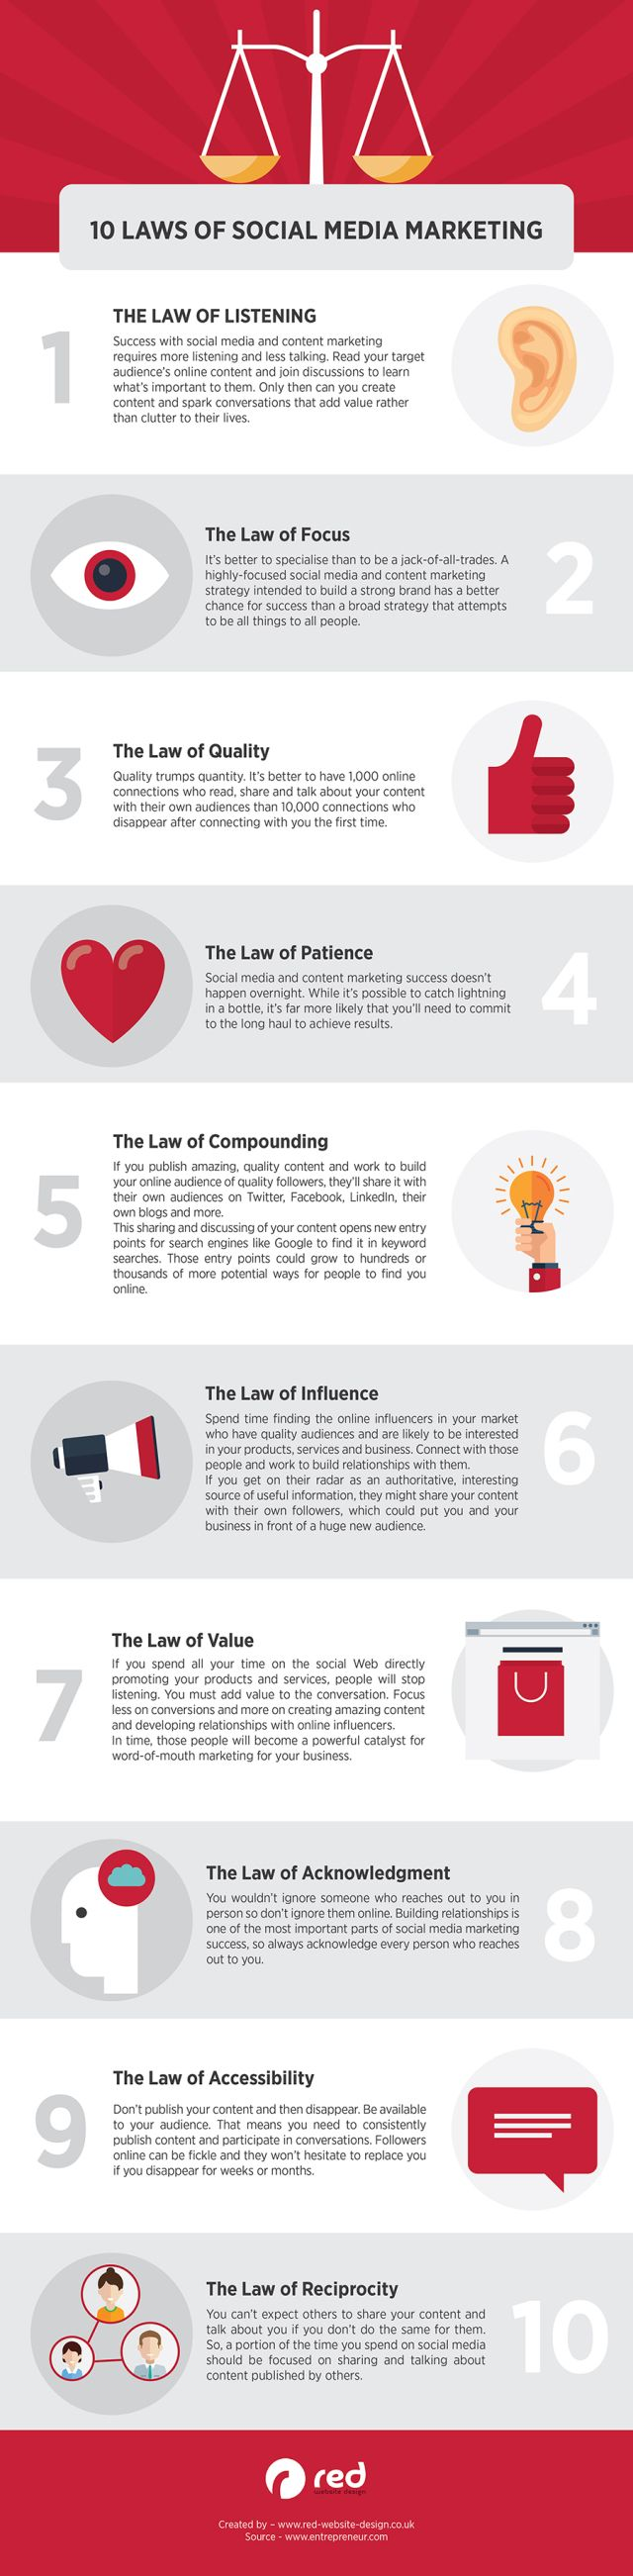 10 Laws of Social Media Marketing That Will Guide You to Success #Infographic